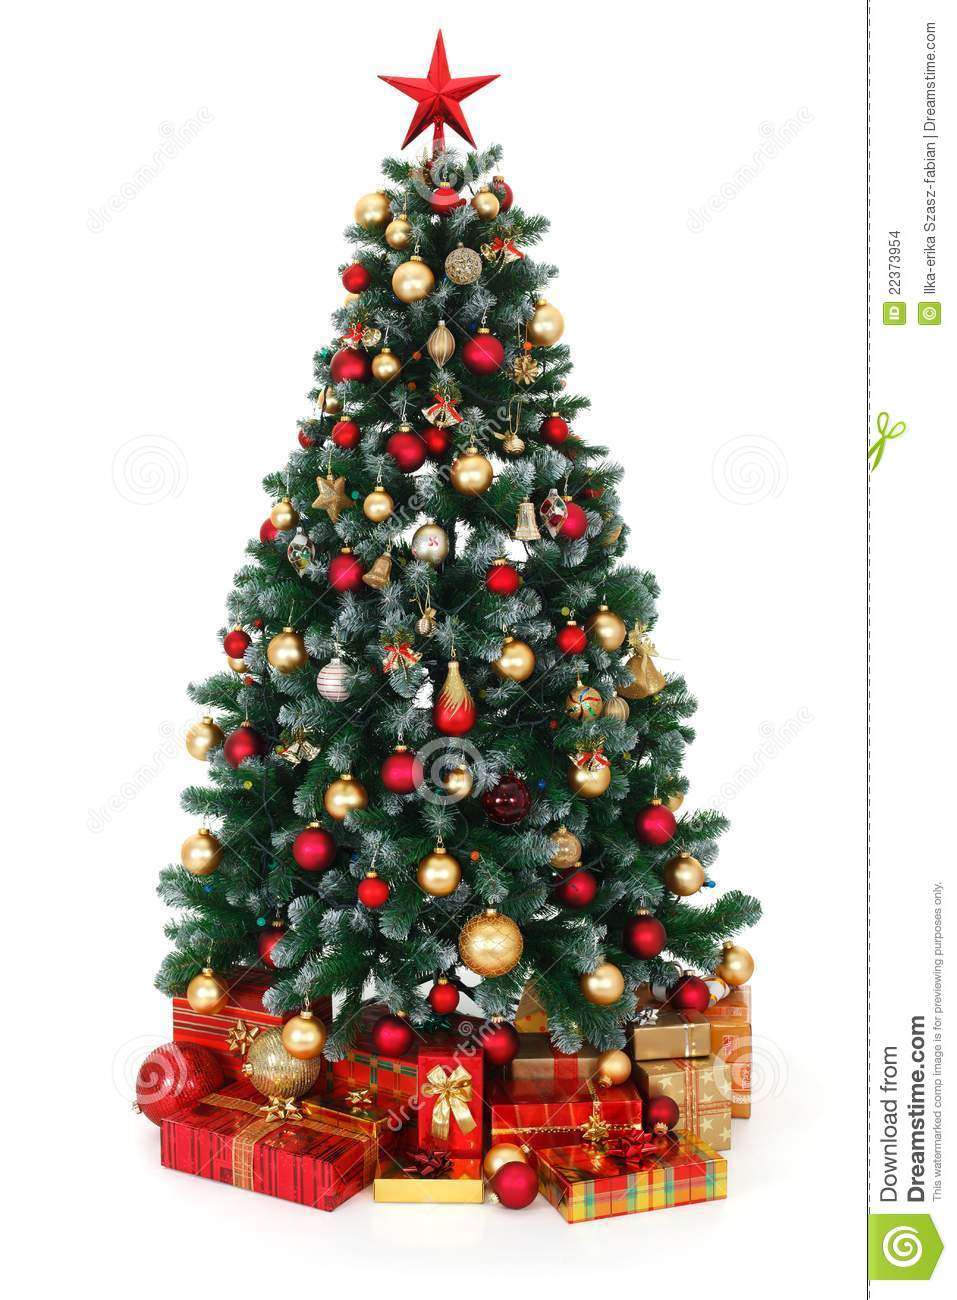 Green decorated christmas tree and presents stock photo image of green decorated christmas tree and presents publicscrutiny